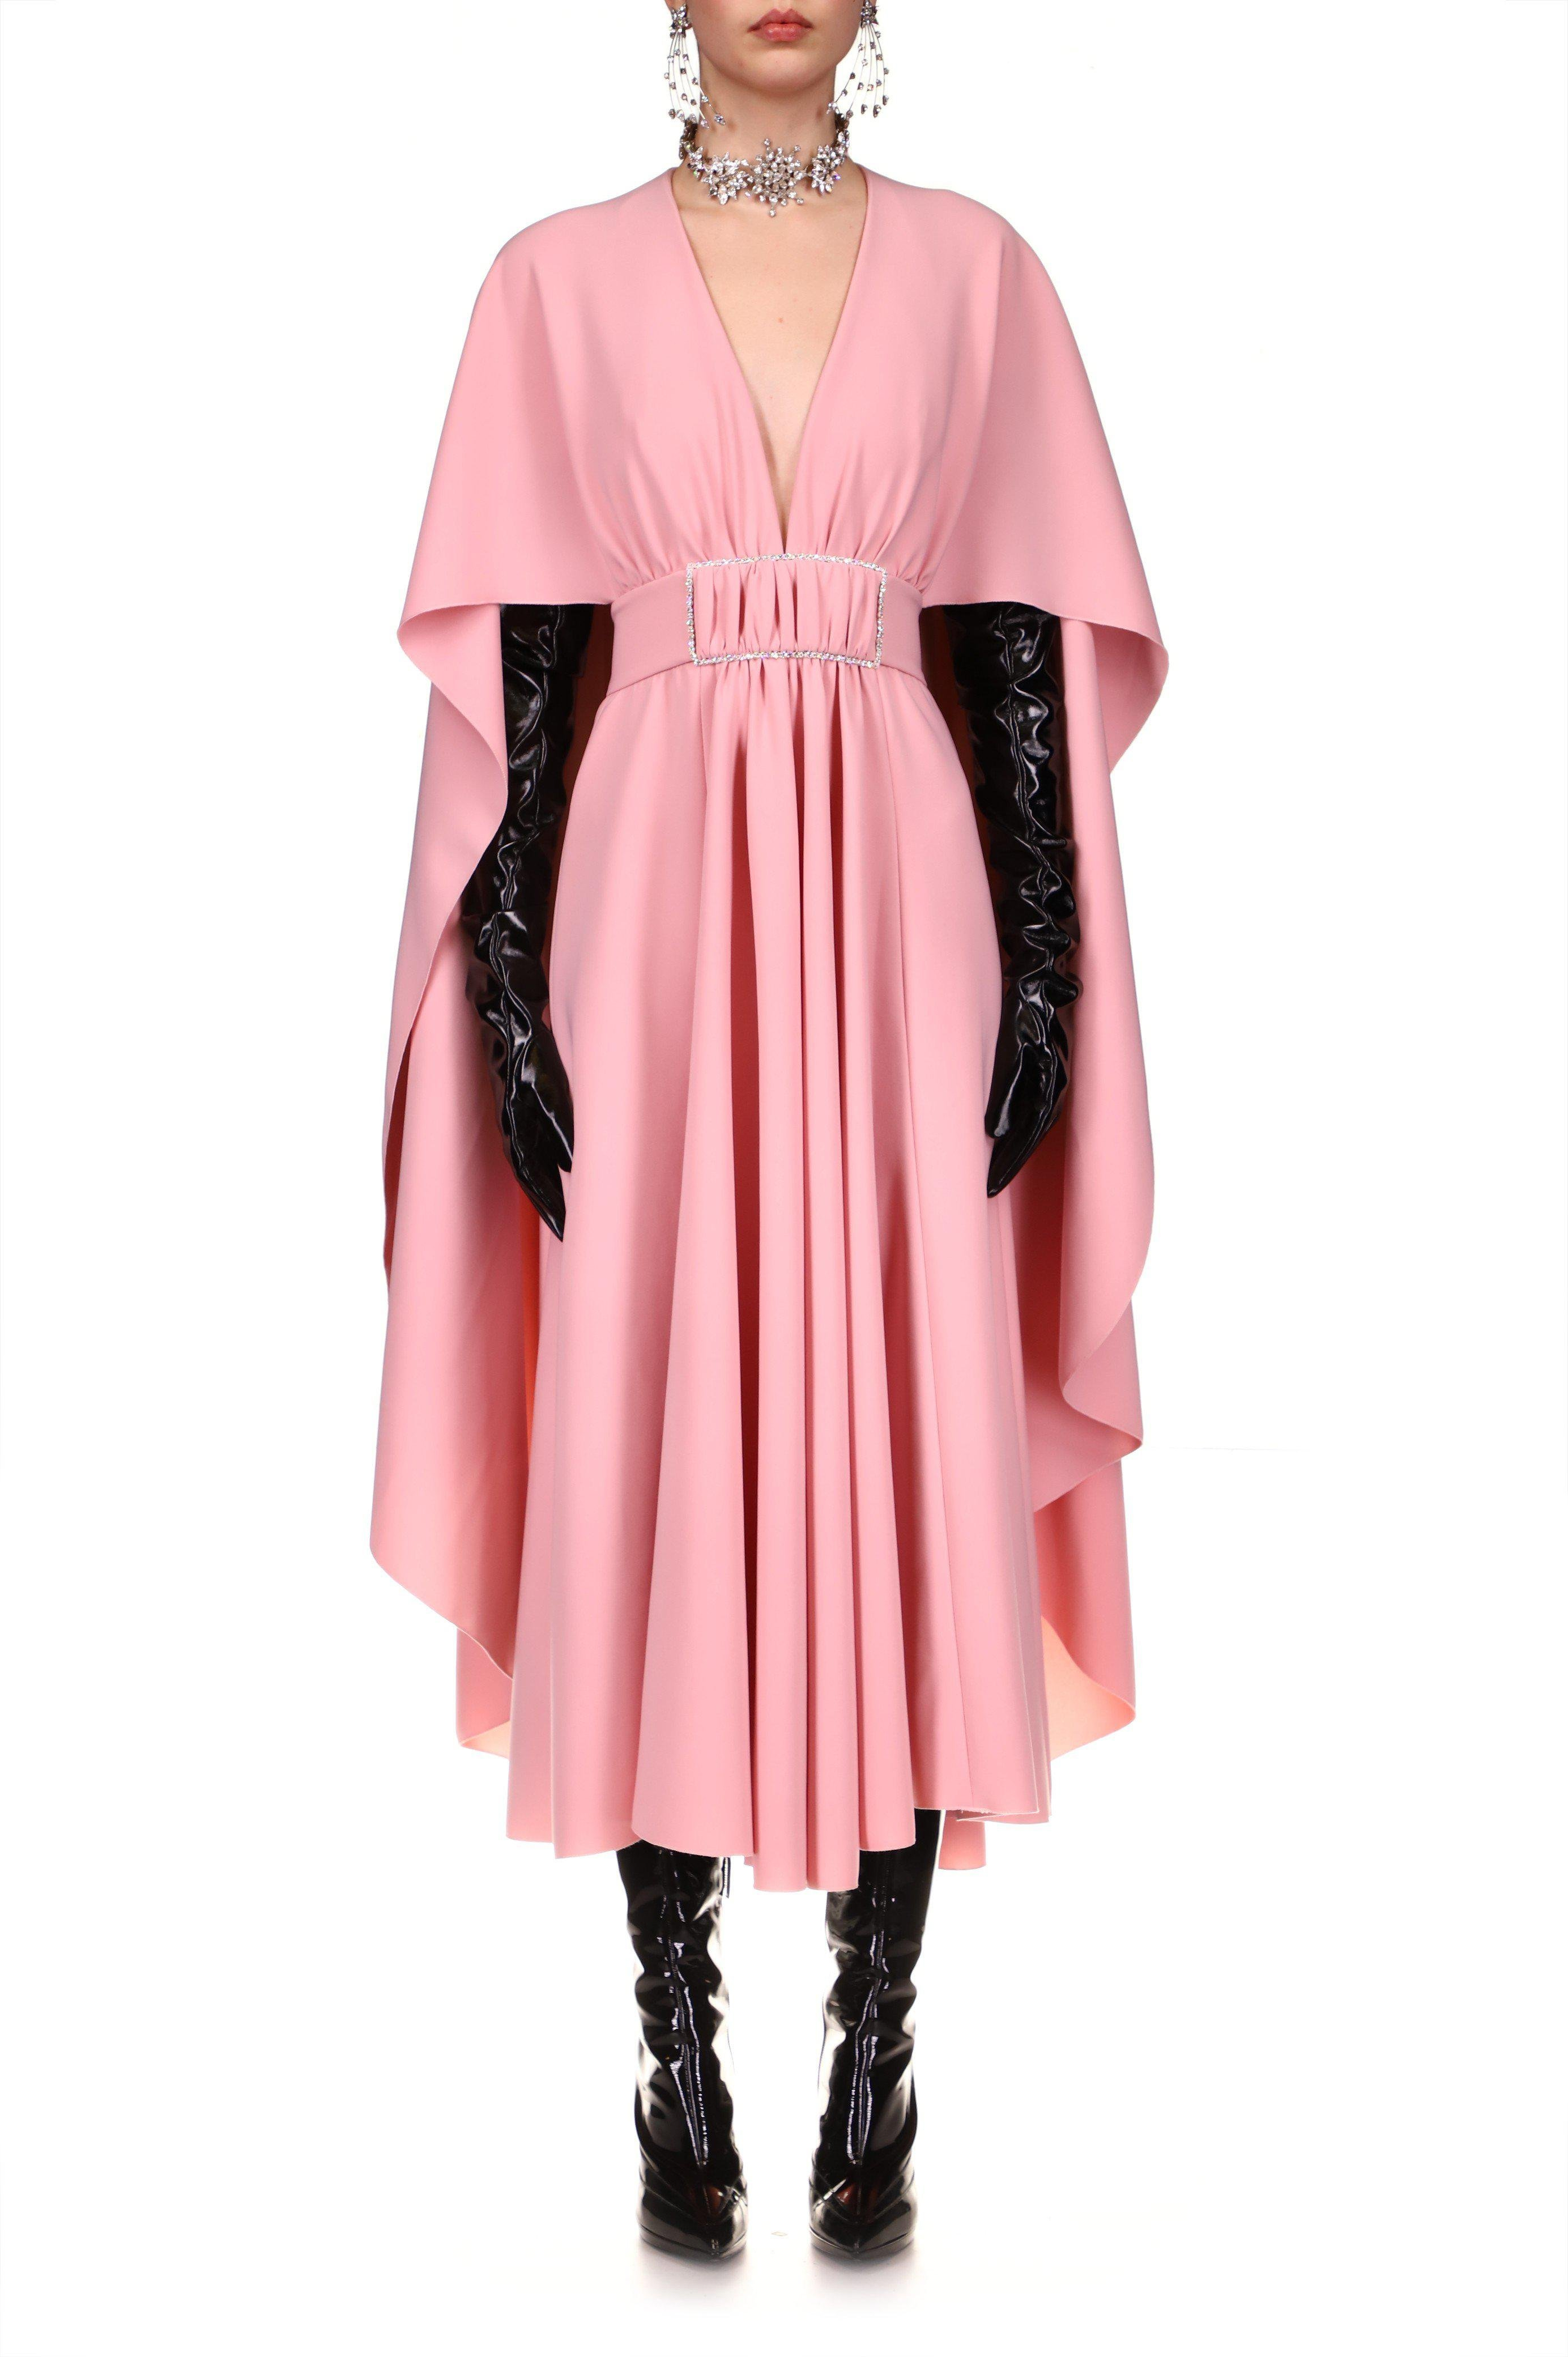 PINK DRAPED DRESS WITH CAPE AND RHINESTONE DETAIL